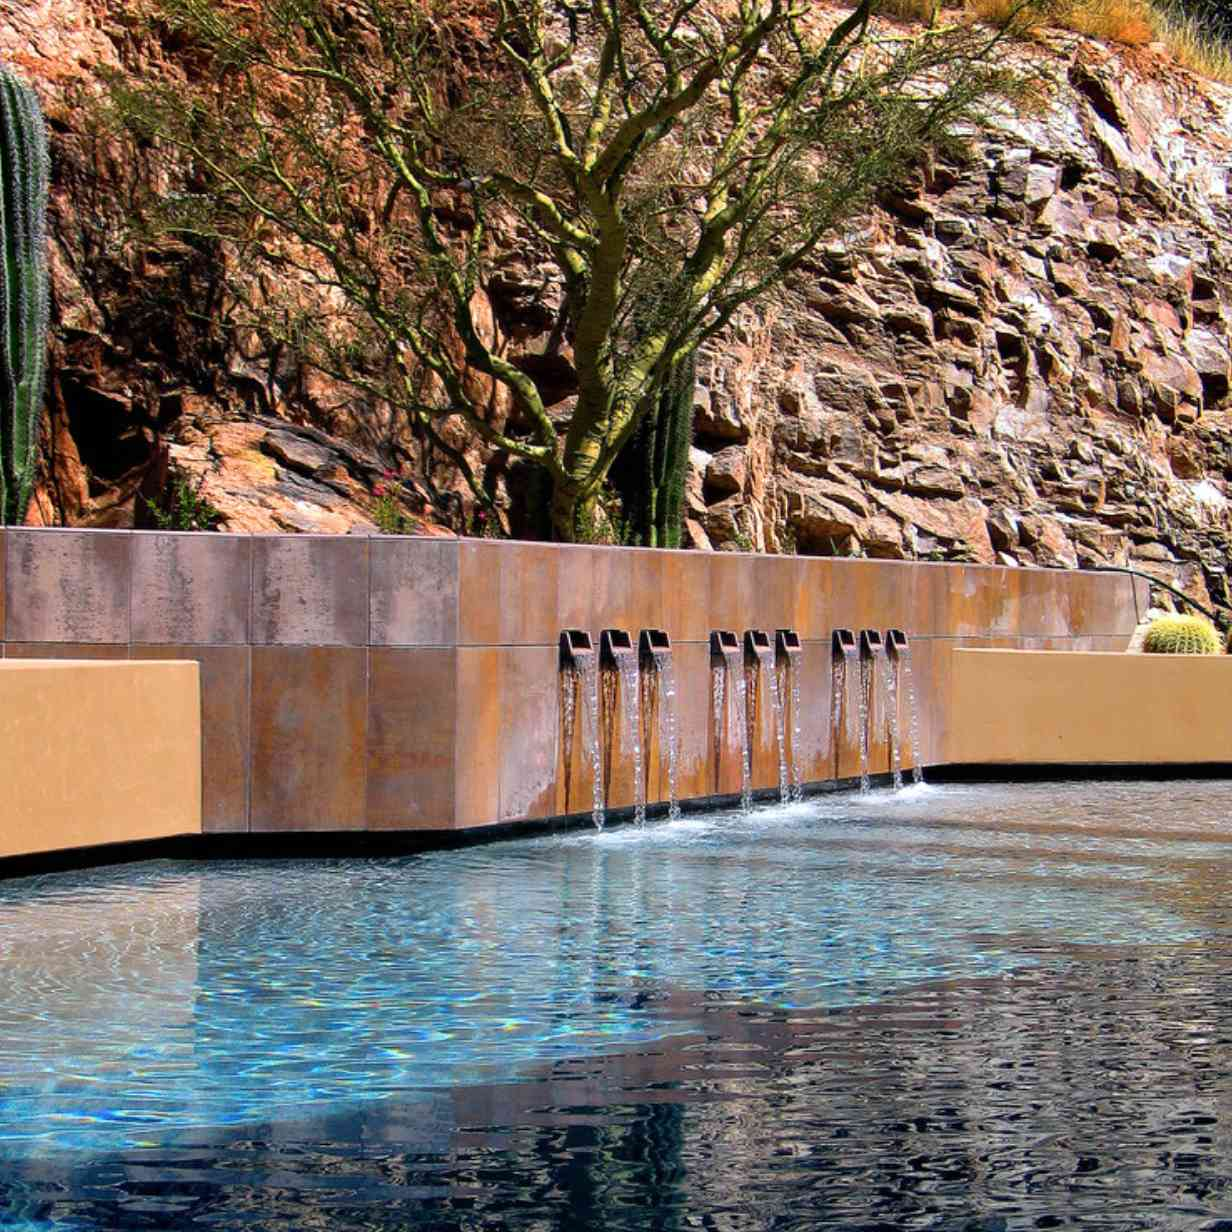 Pool with scupper water features